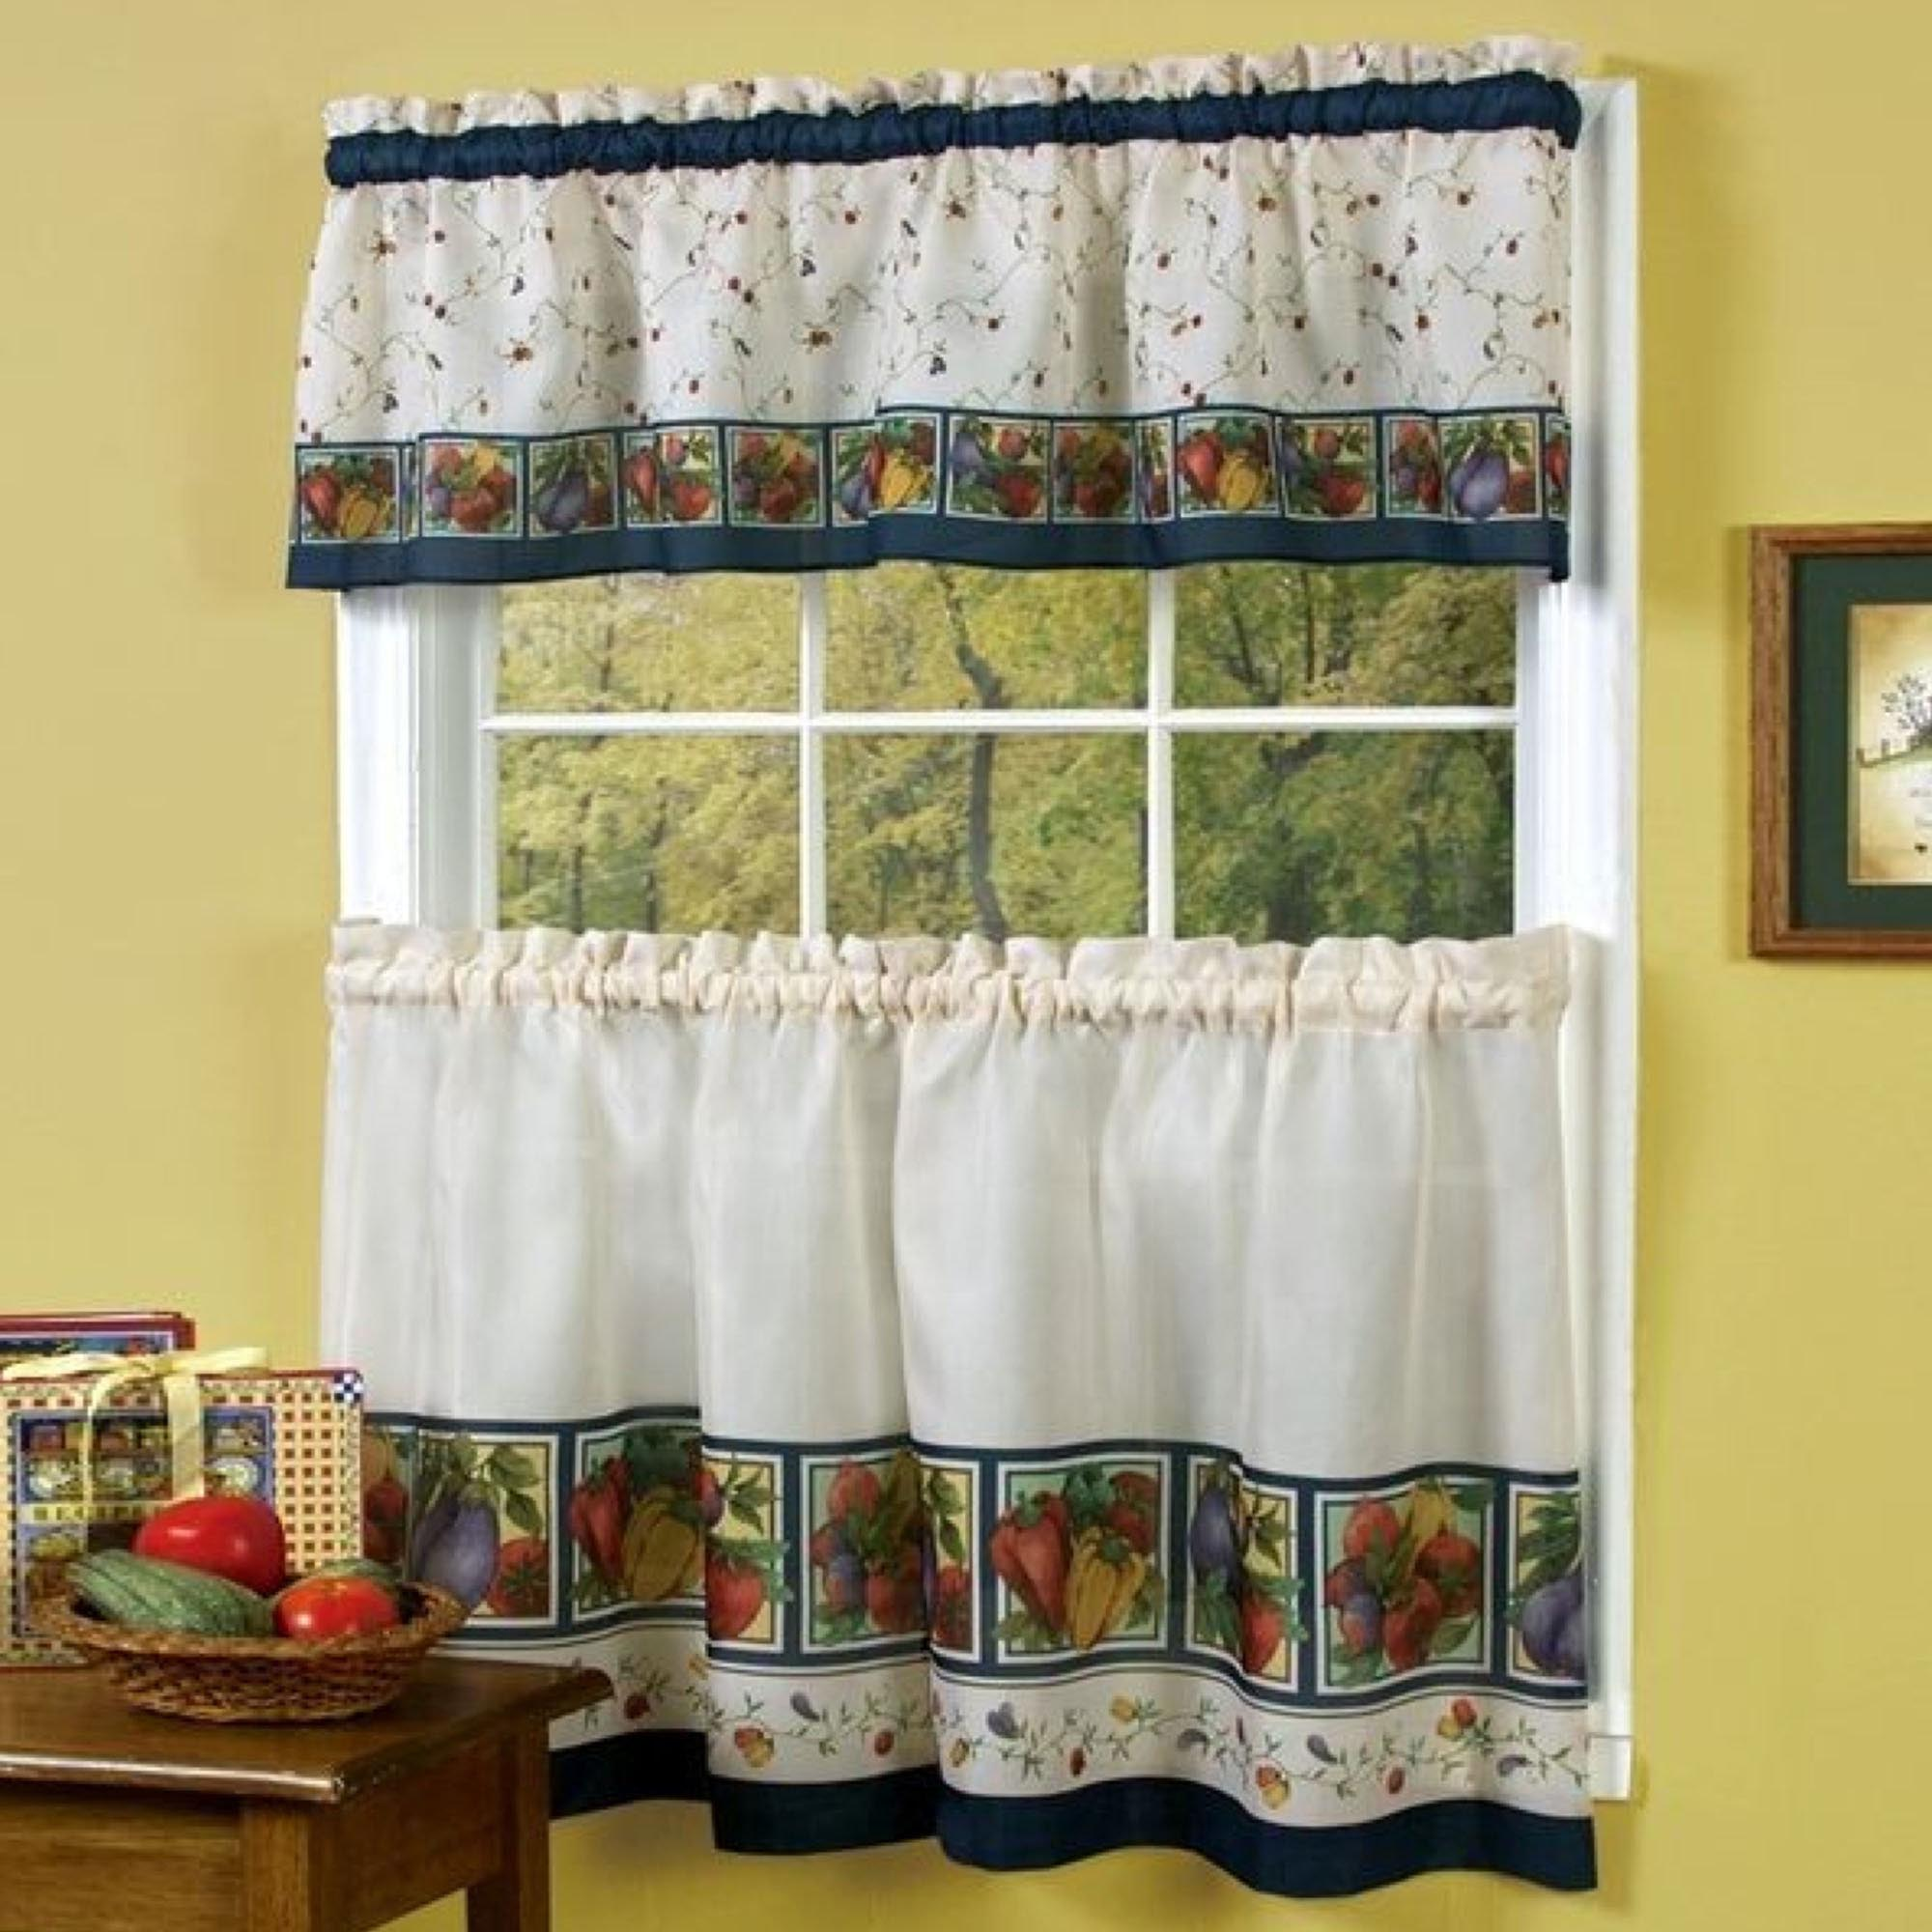 Window valances for kitchen window treatments design ideas for Kitchen window curtains